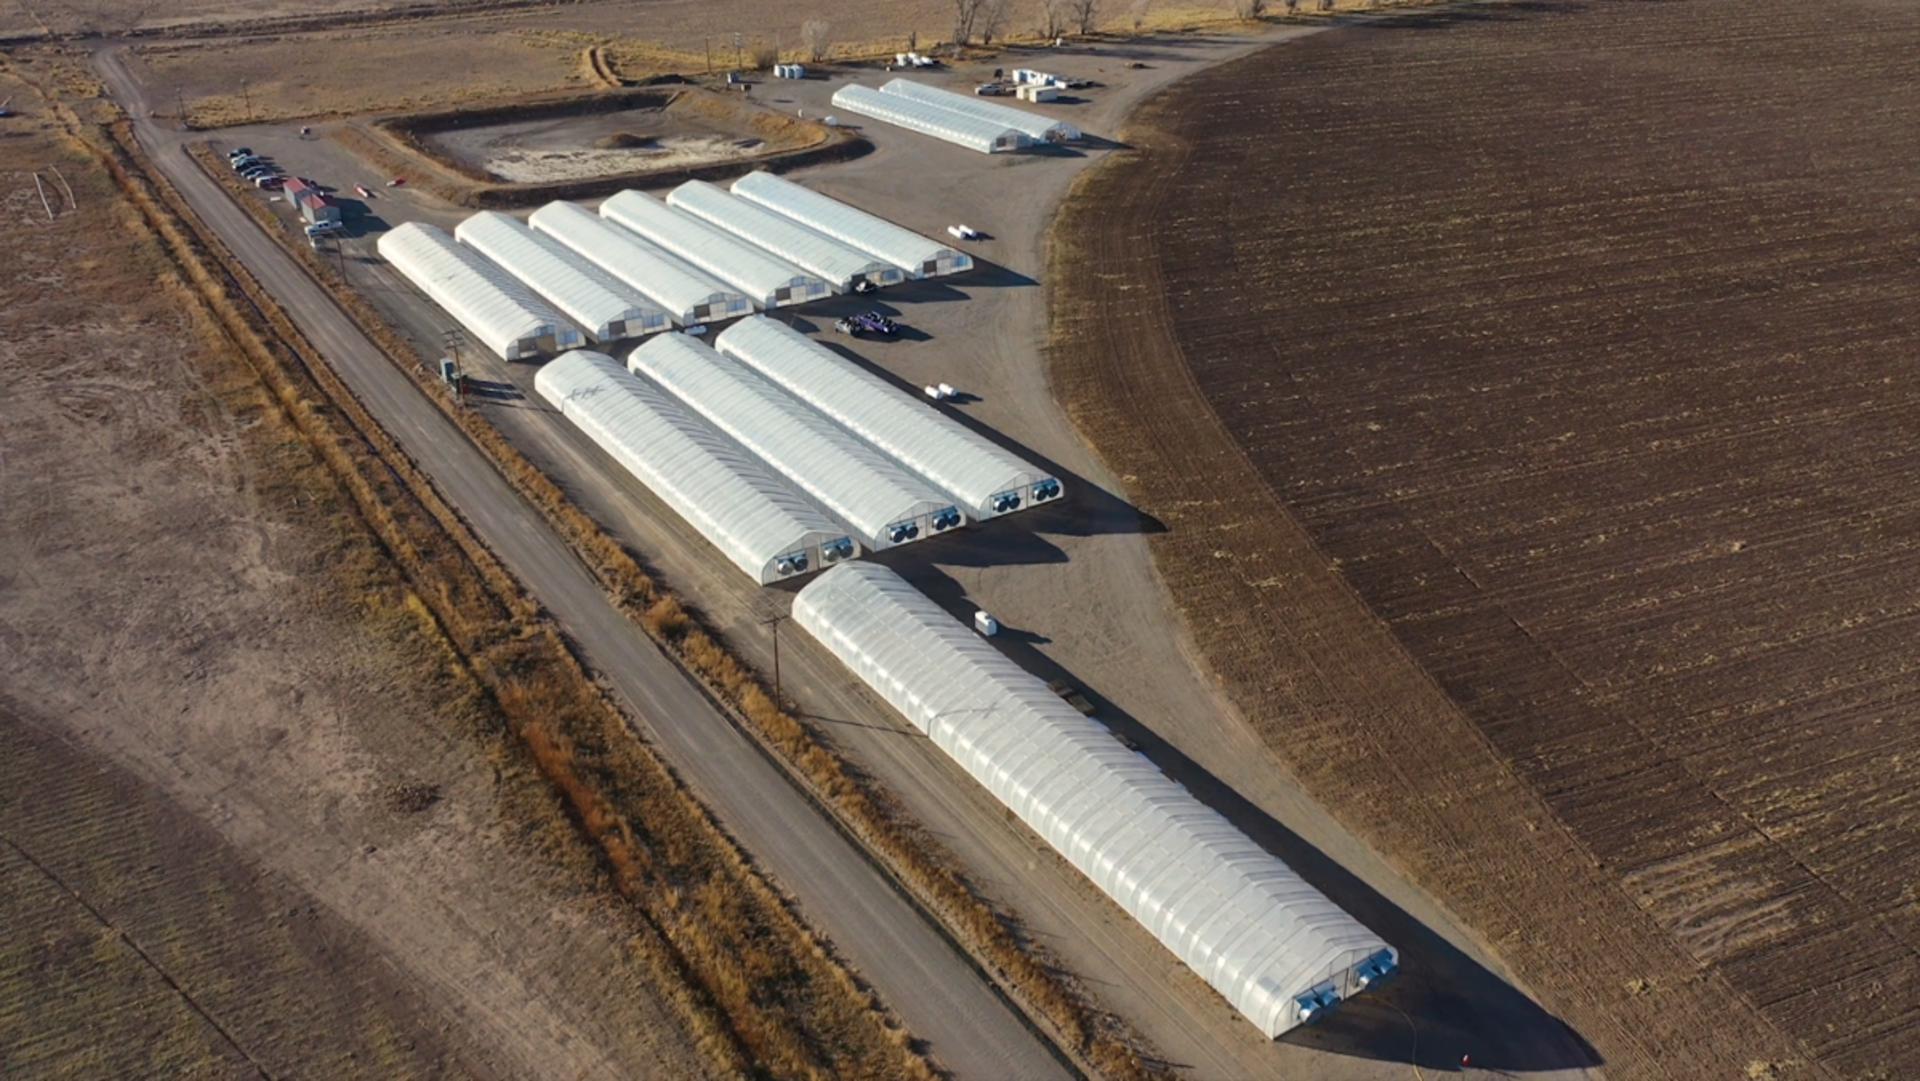 Scenic Acres Greenhouse Mfg Greenhouse w/ Four Exhaust Fans and Two Heaters, 34' x 200' gothic hoop - Image 9 of 9